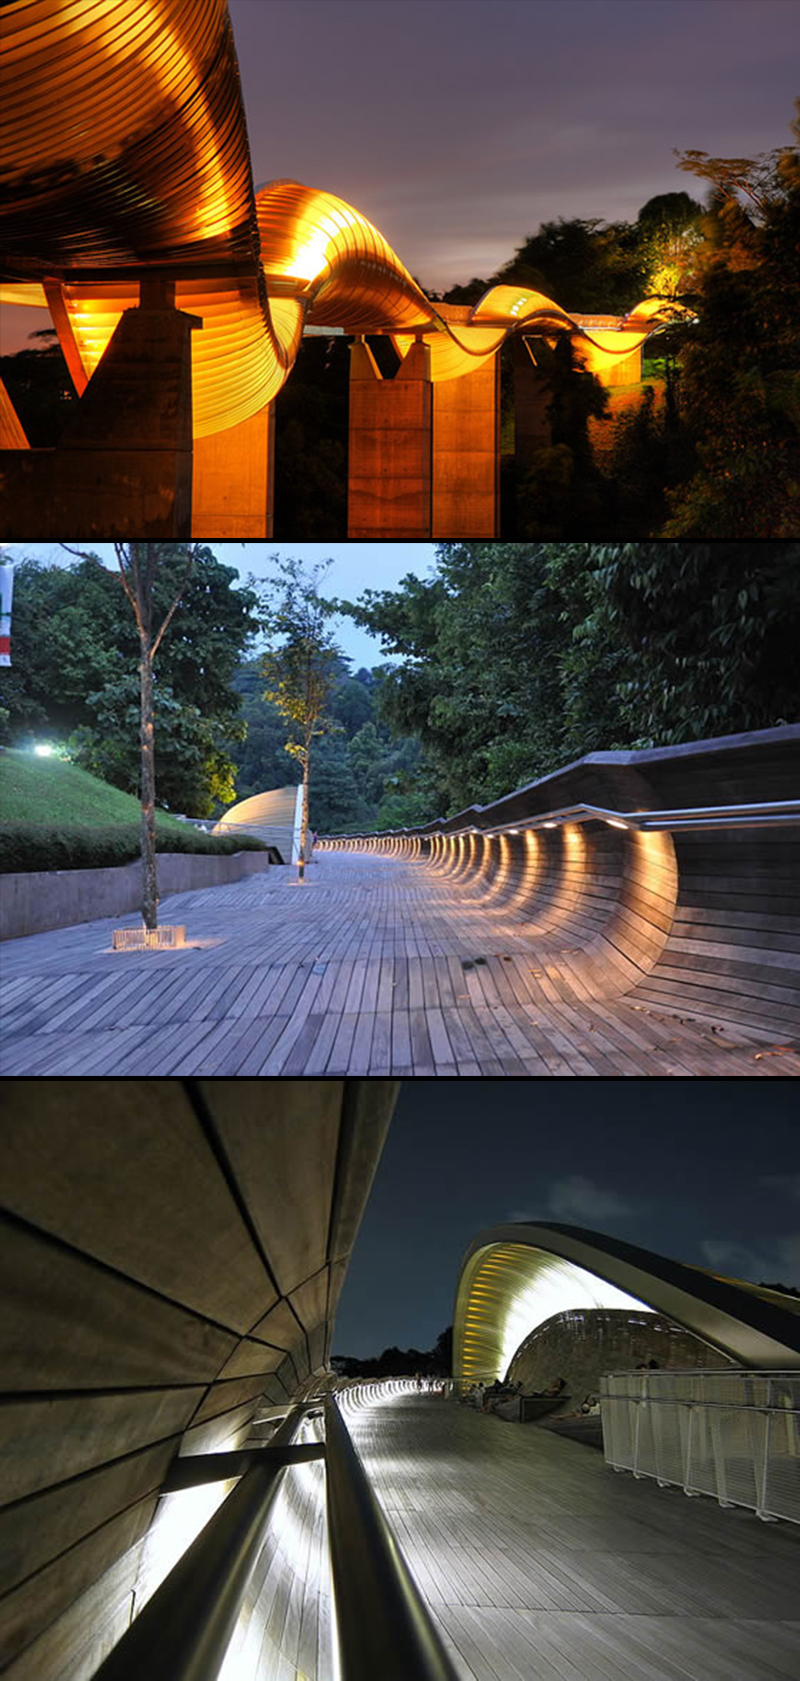 Henderson Waves Bridge, Mount Faber Park, Singapore